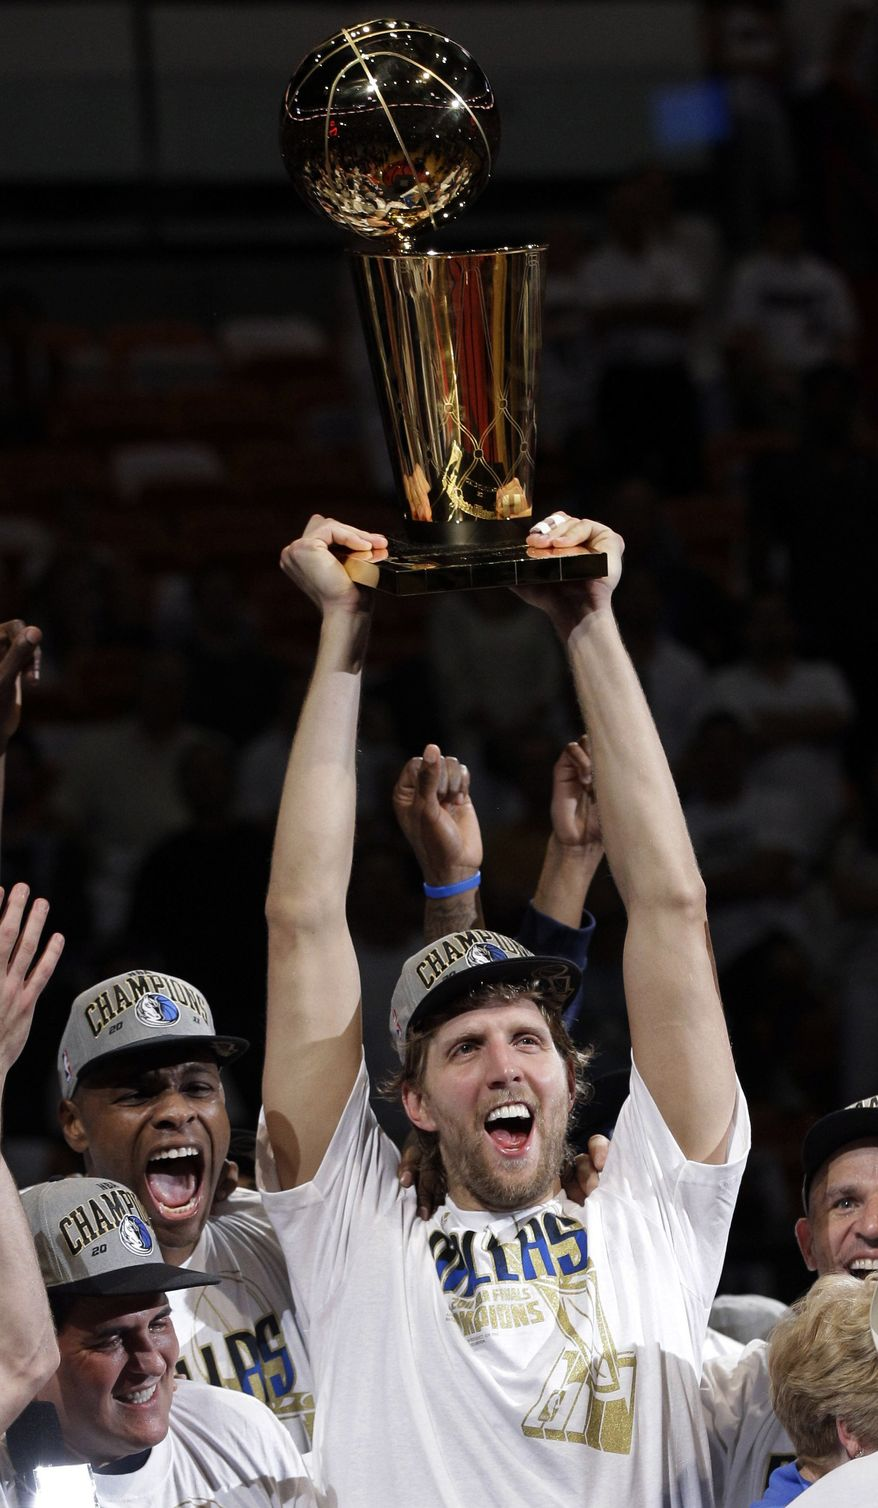 In this June 12, 2011 file photo, Dallas Mavericks' Dirk Nowitzki holds up the championship trophy after Game 6 of the NBA Finals basketball game against the Miami Heat in Miami. The Mavericks won 105-95 to win the series. (AP Photo/David J. Phillip, File)